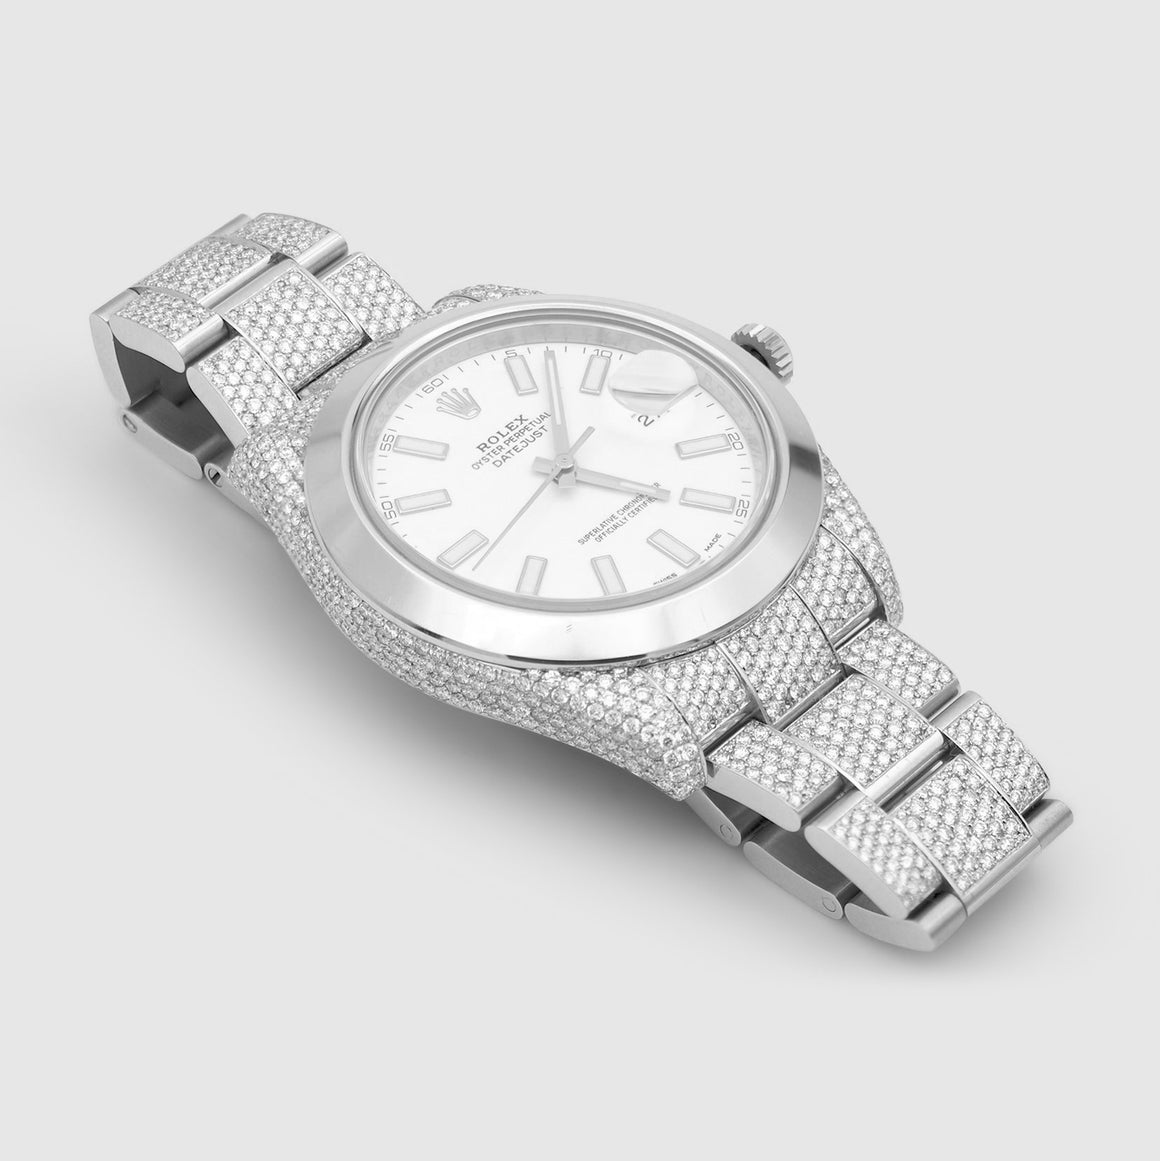 Iced Out DateJust II 41mm Stainless Steel White Dial Watch